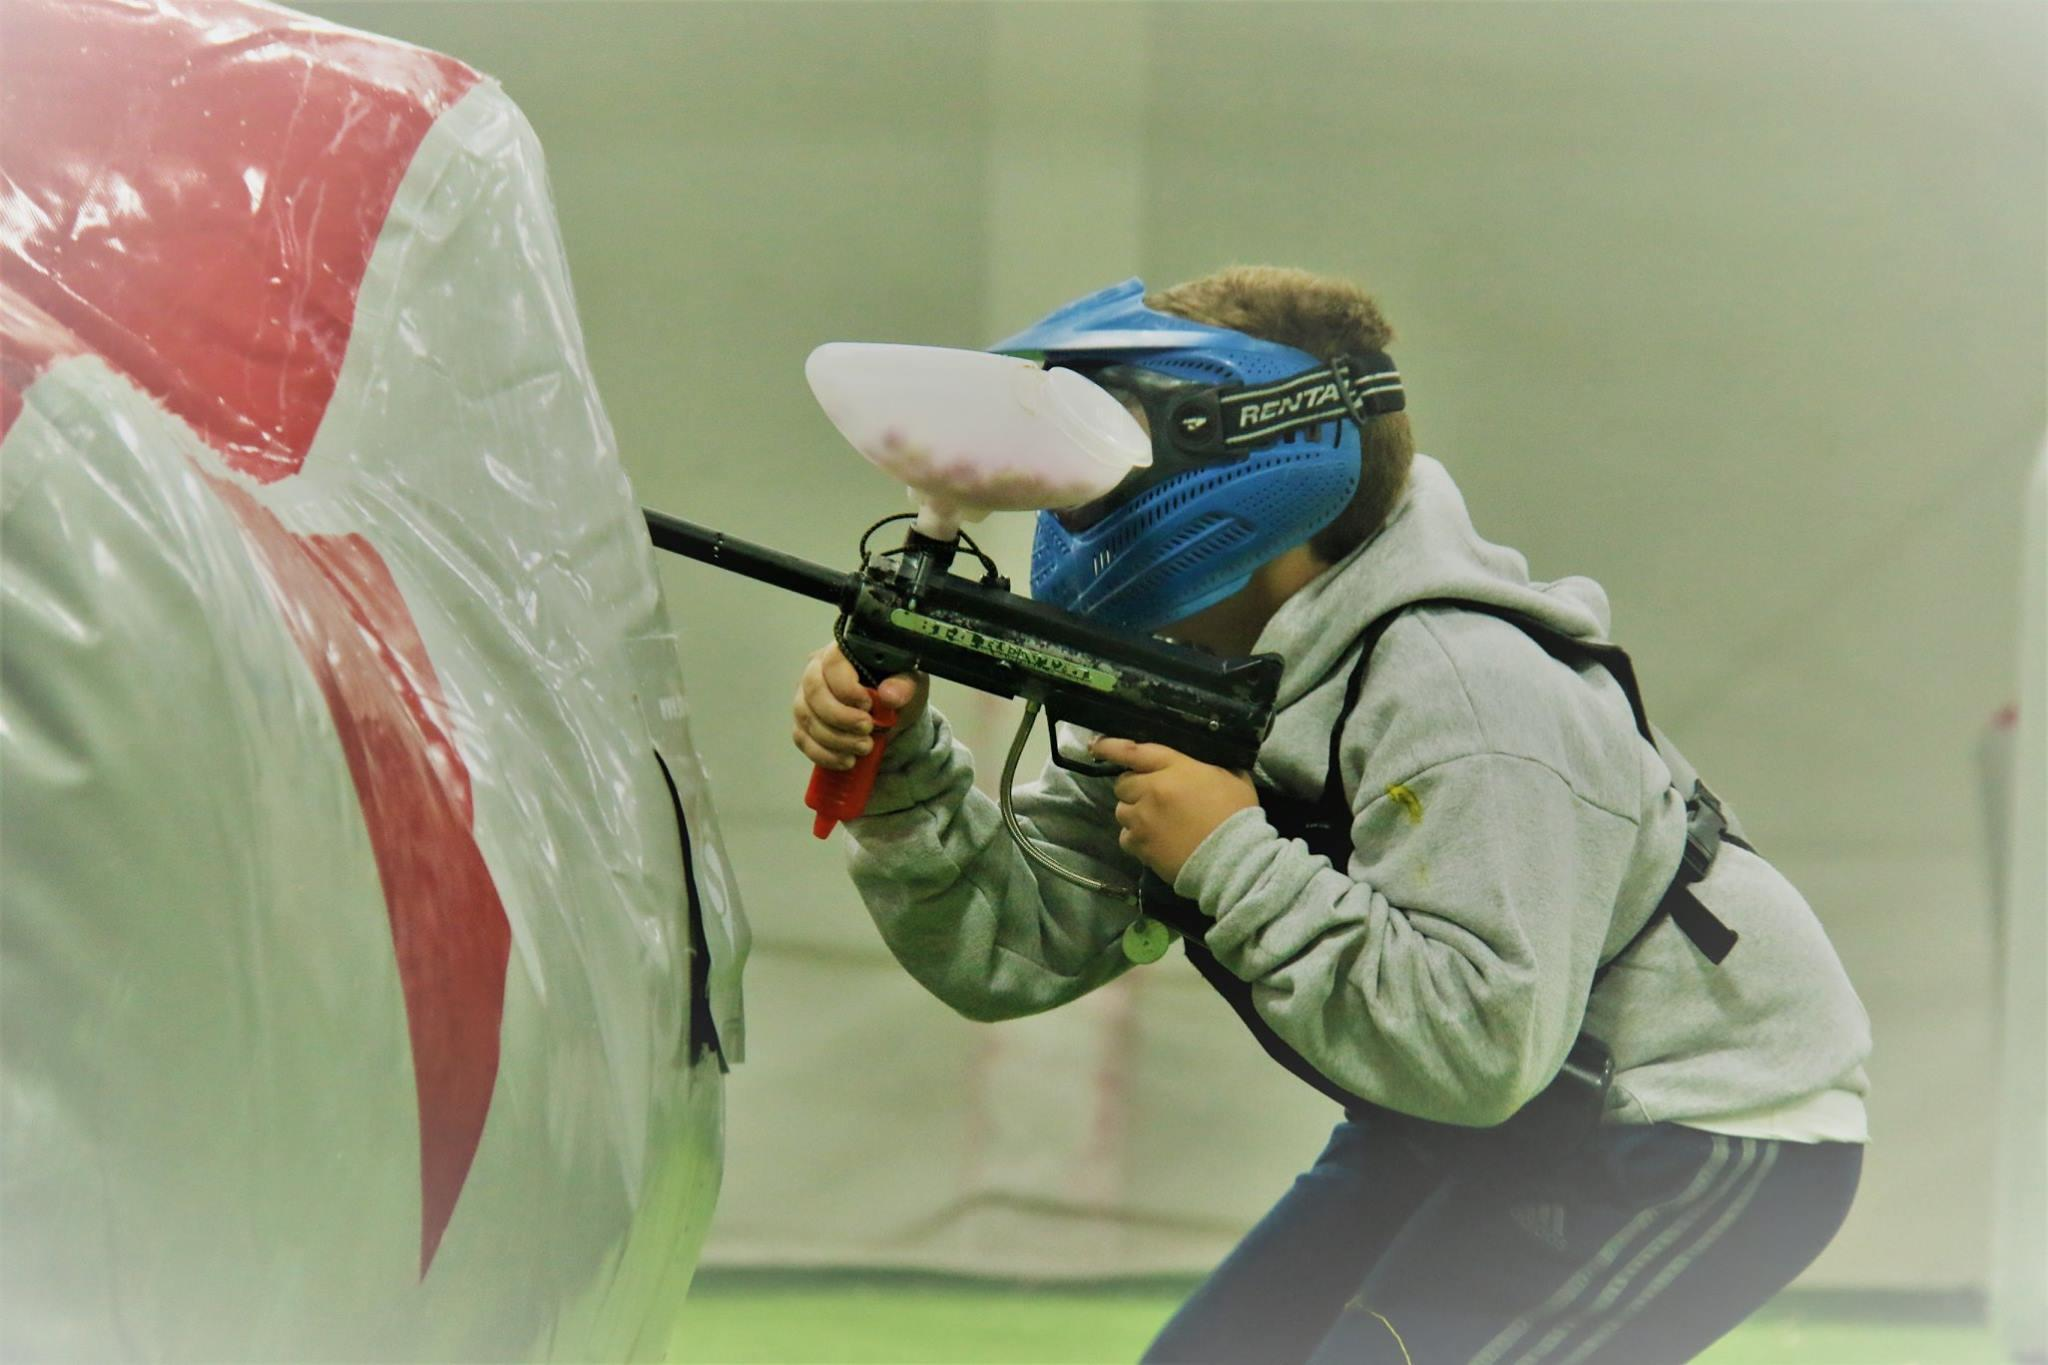 OHare Paintball Park image 2